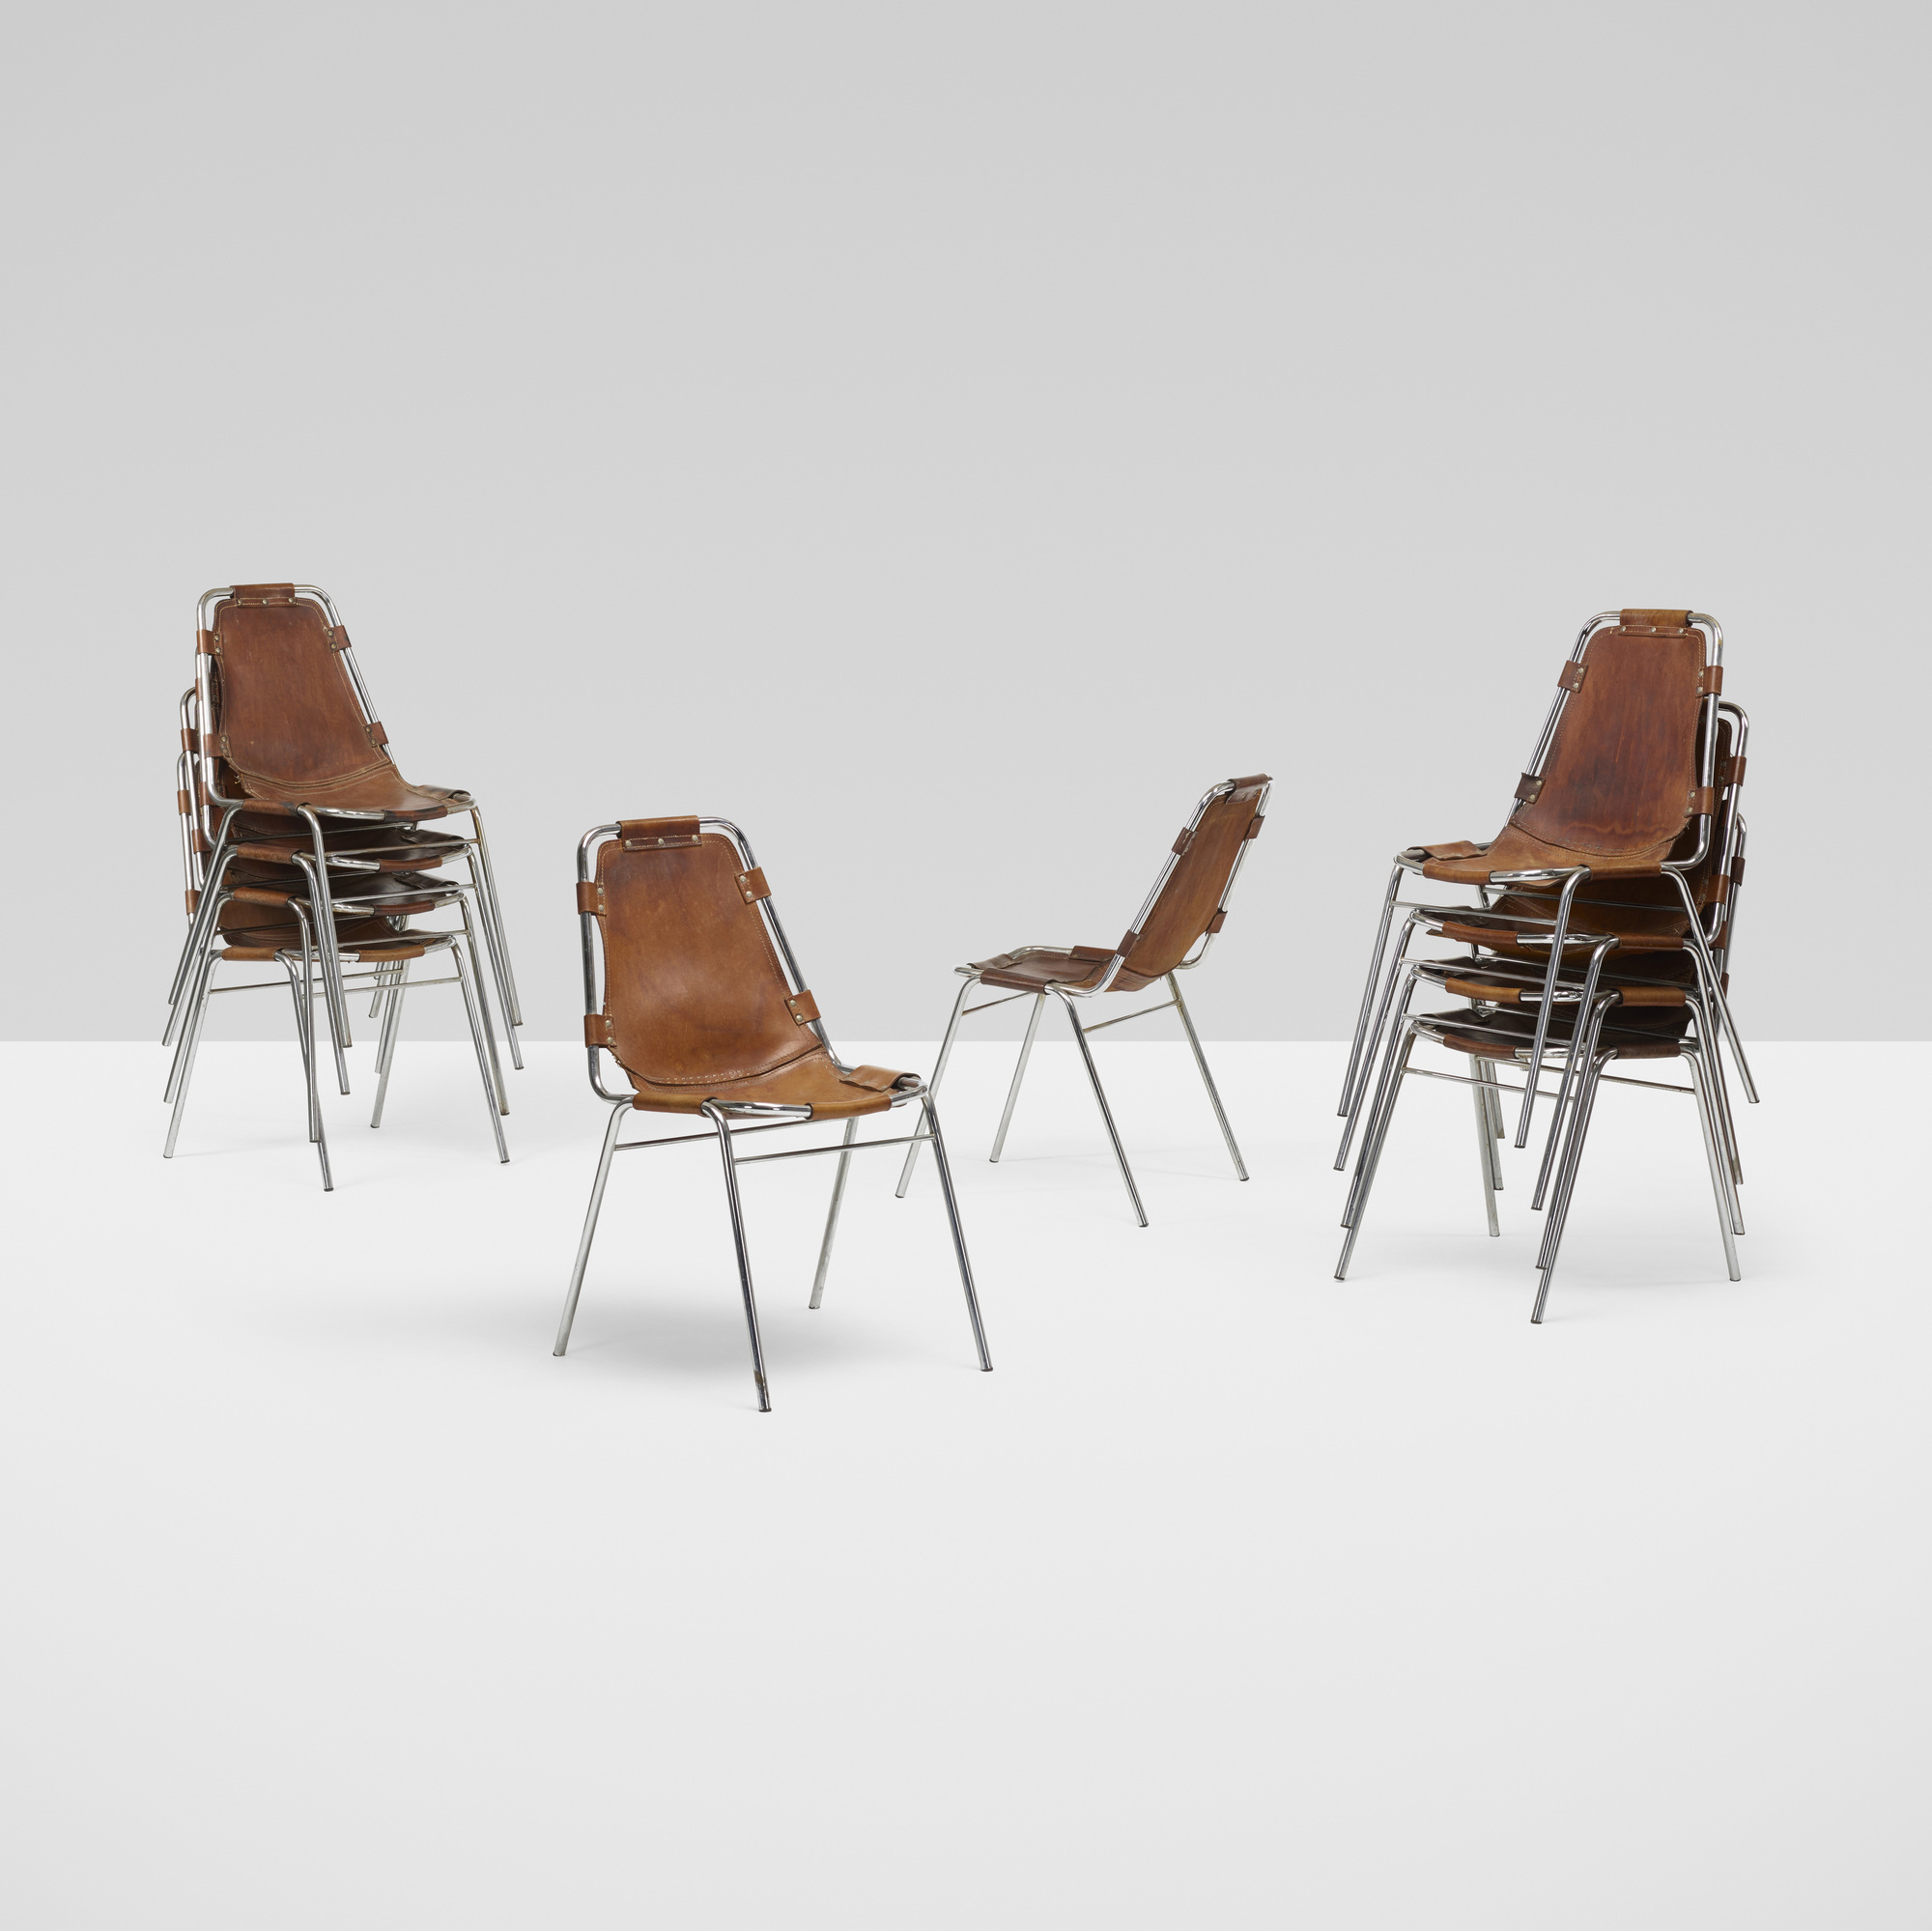 117: Charlotte Perriand / dining chairs from Les Arcs, set of ten (2 of 5)